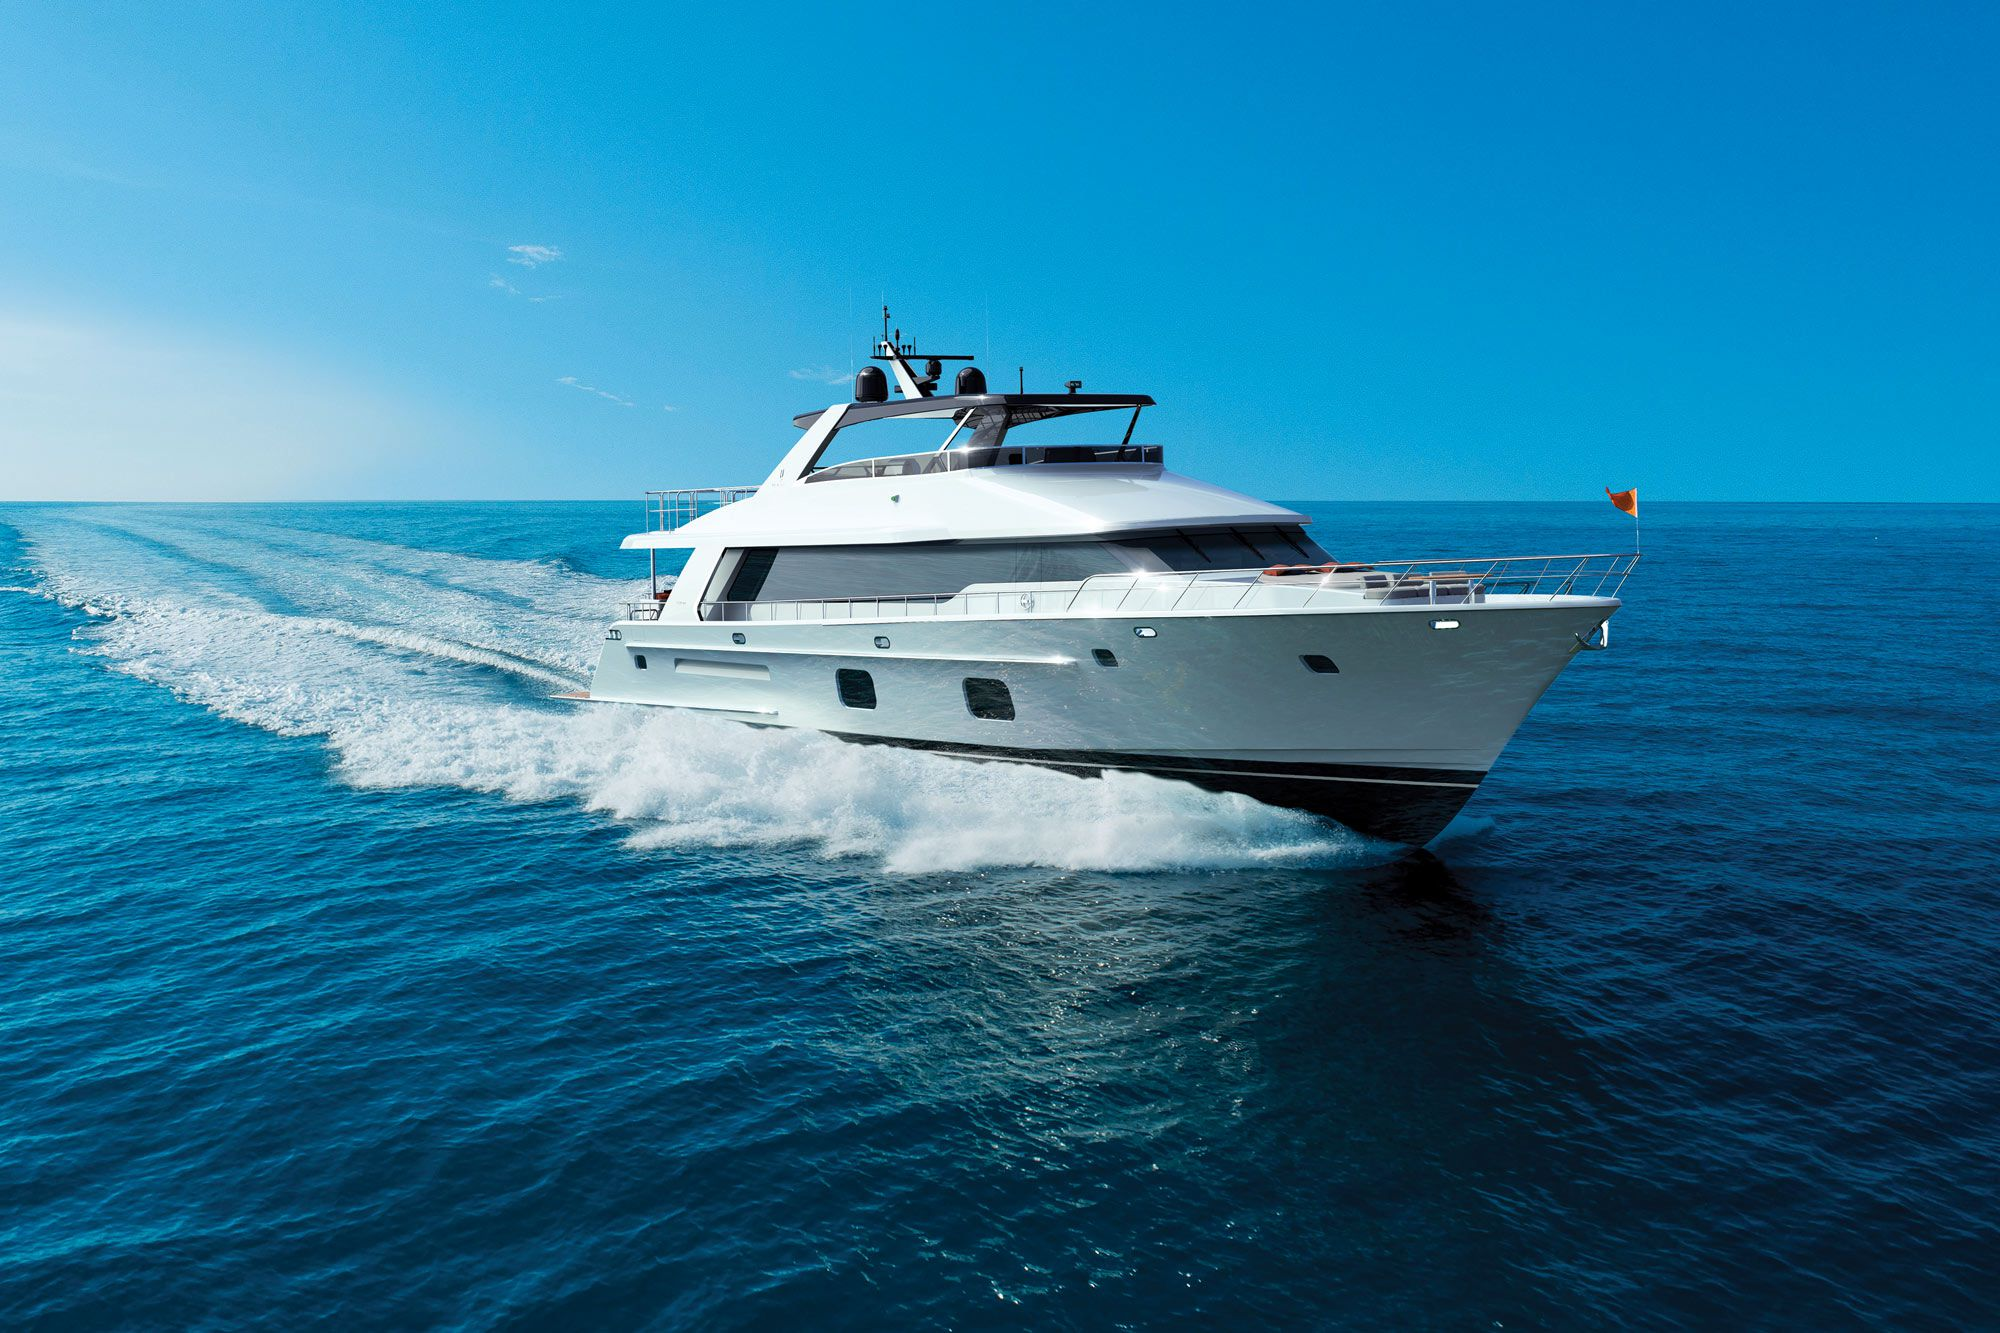 The CLB88 is the first new model for CL Yachts. A 96-footer is under construction.